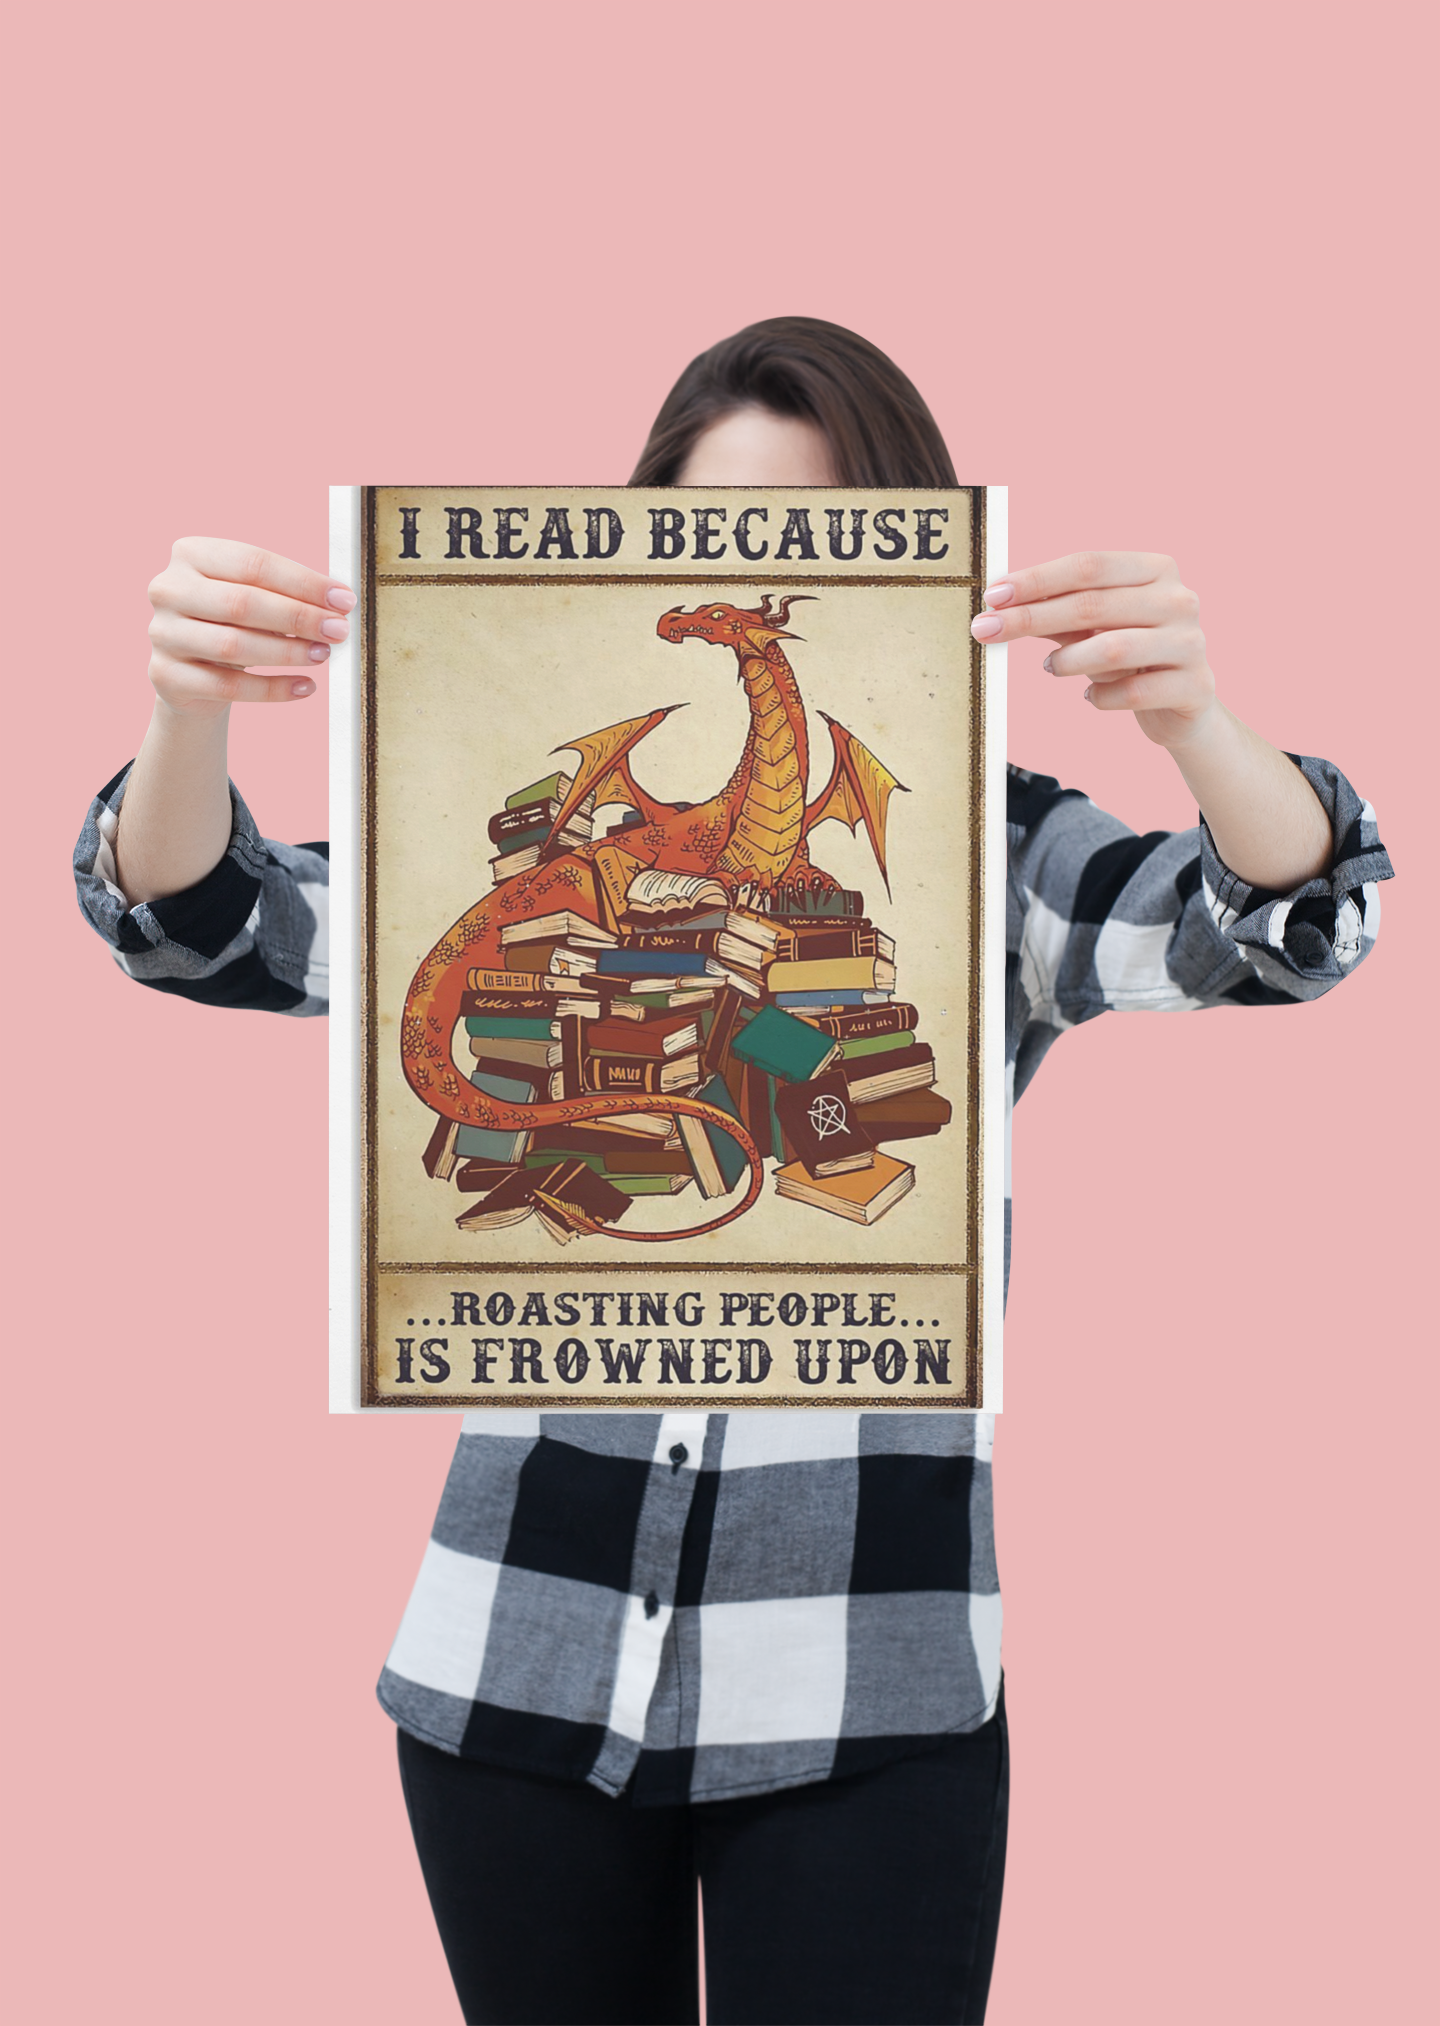 Dragon I read because roasting people is frowned upon poster 19